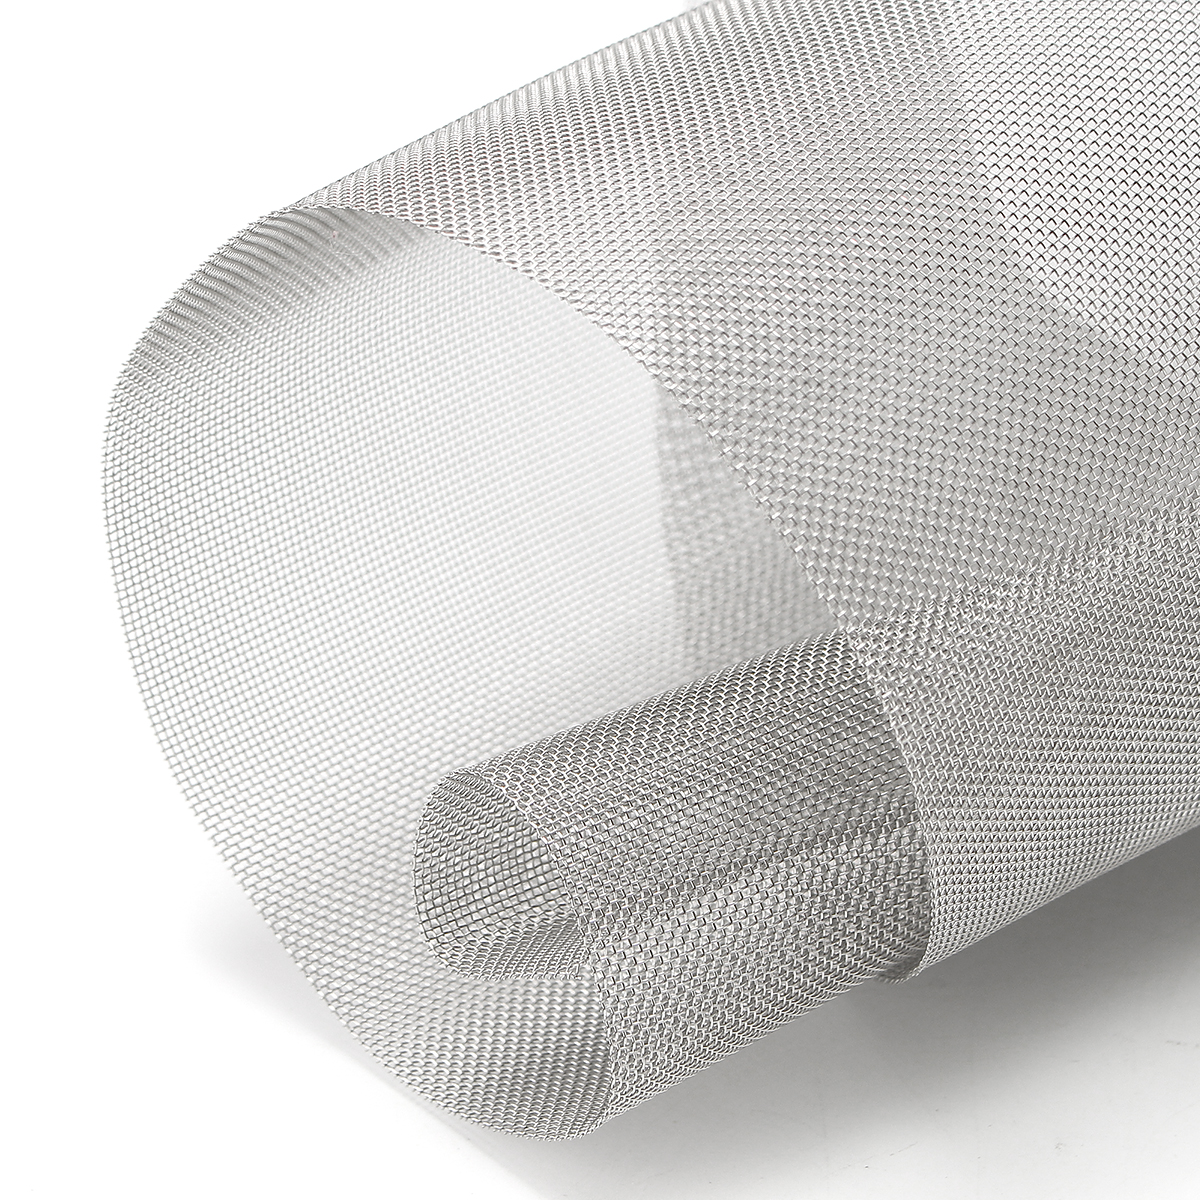 Cm woven wire cloth screen stainless steel